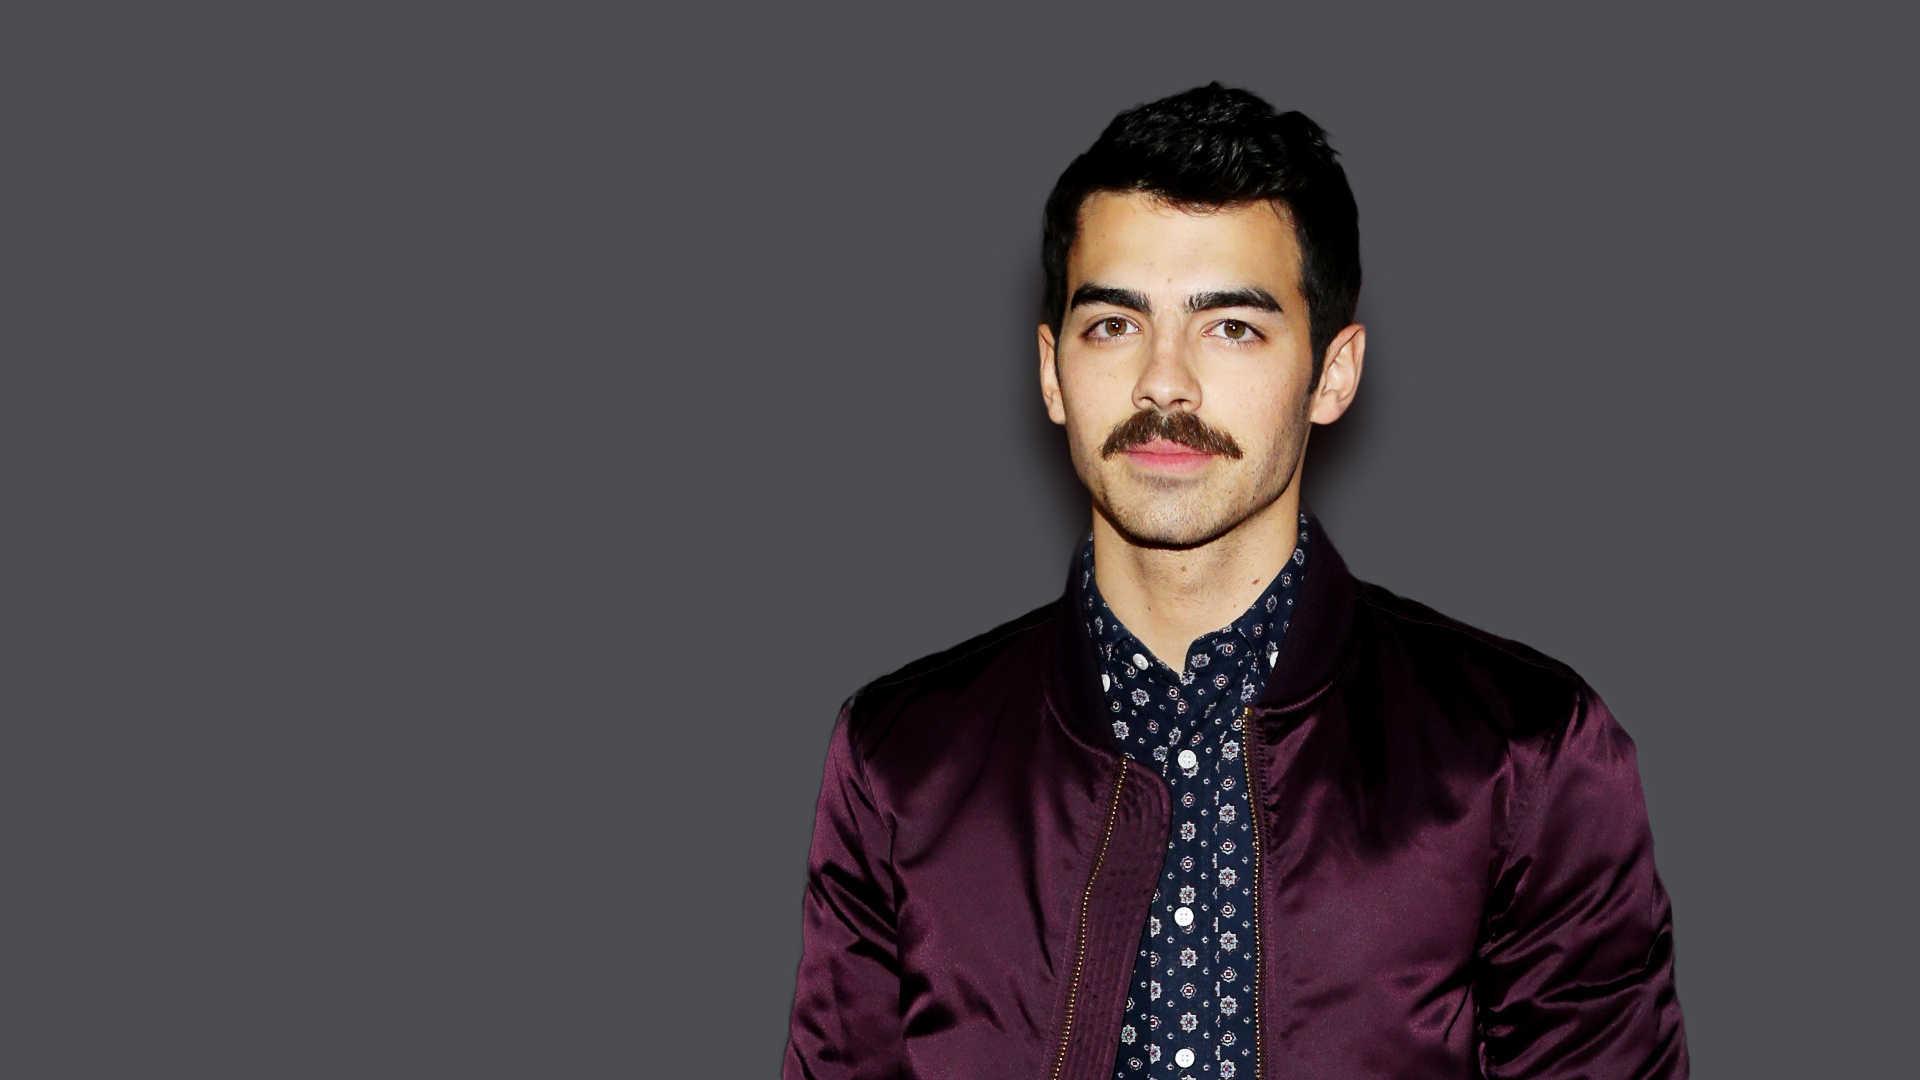 joe jonas widescreen desktop wallpaper 1366